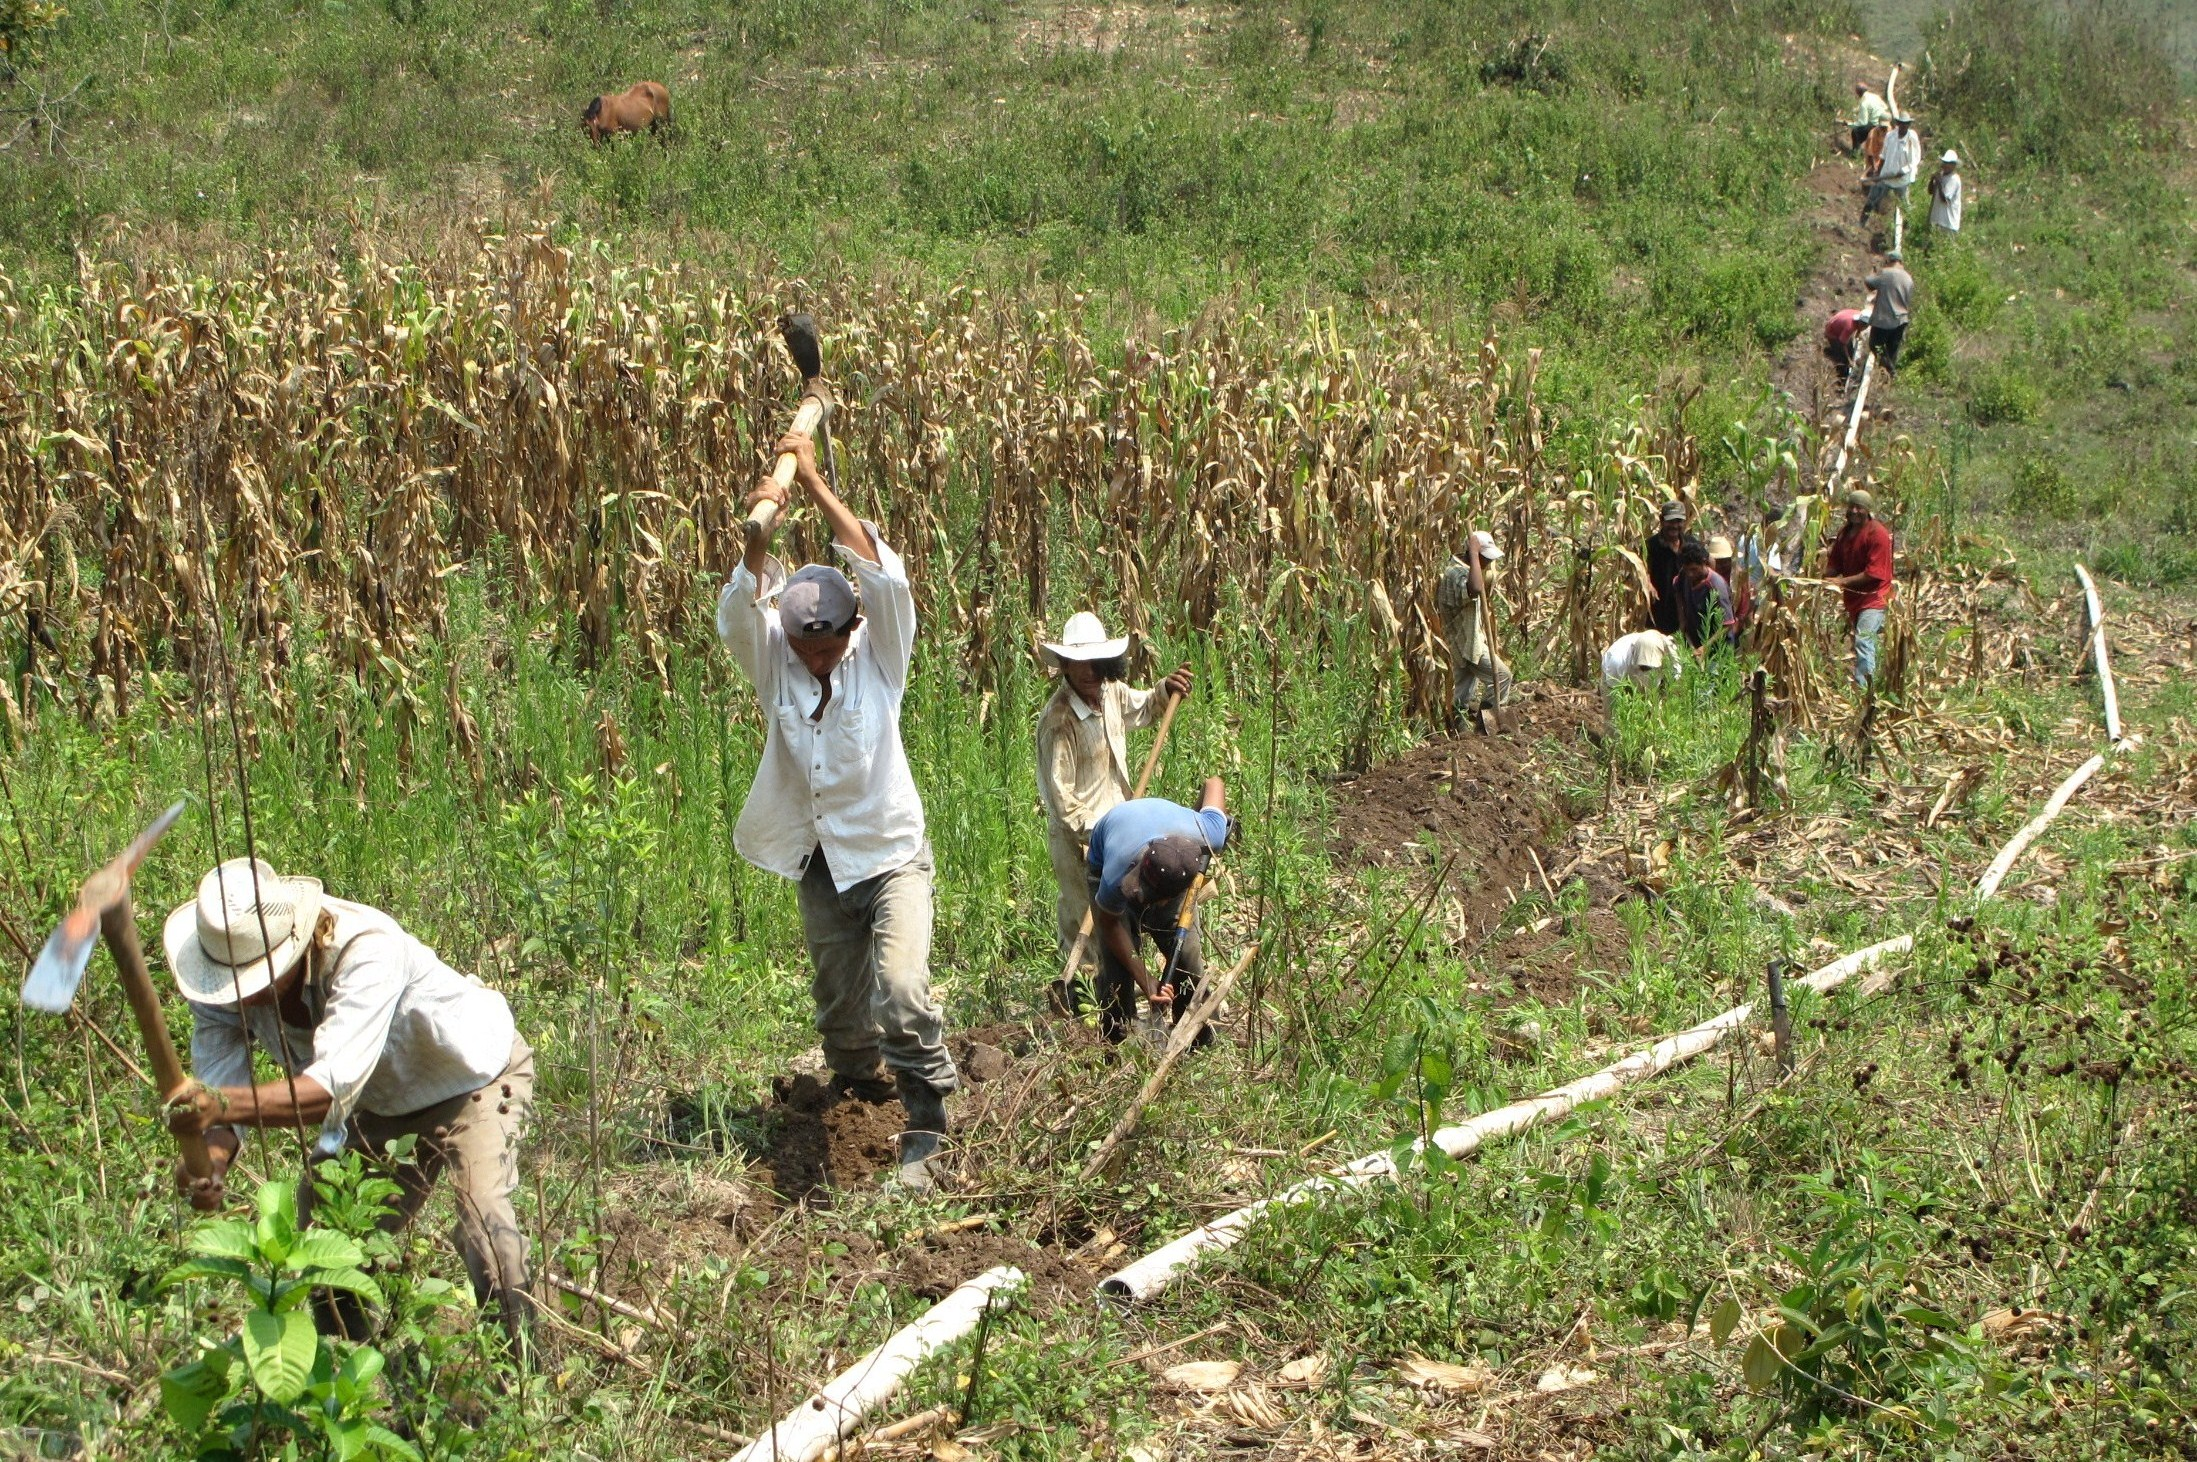 Volunteers from a Honduran community lay potable water pipes through a subsistence farmer's cornfield. Photo by Carylanna Taylor, 2009.